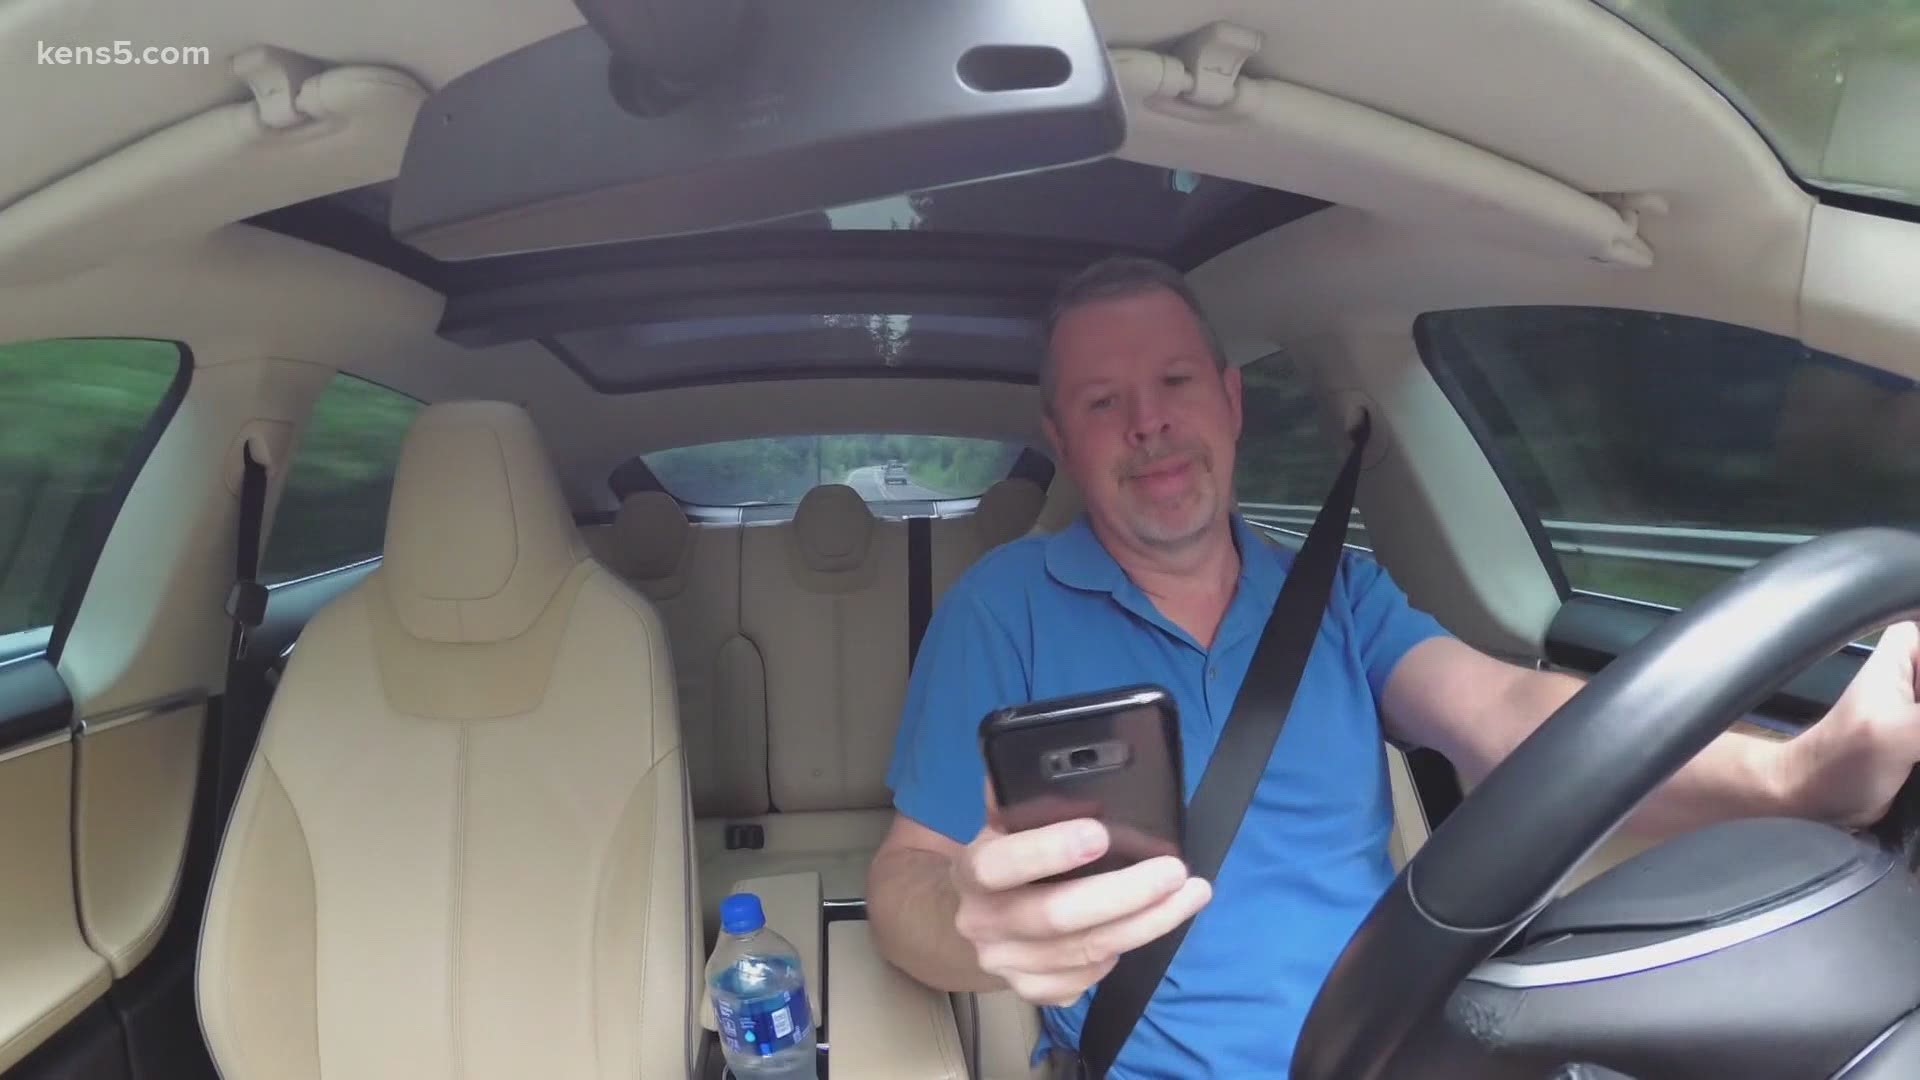 Zoom is adding to distracted driving during the pandemic, Safe2Save says